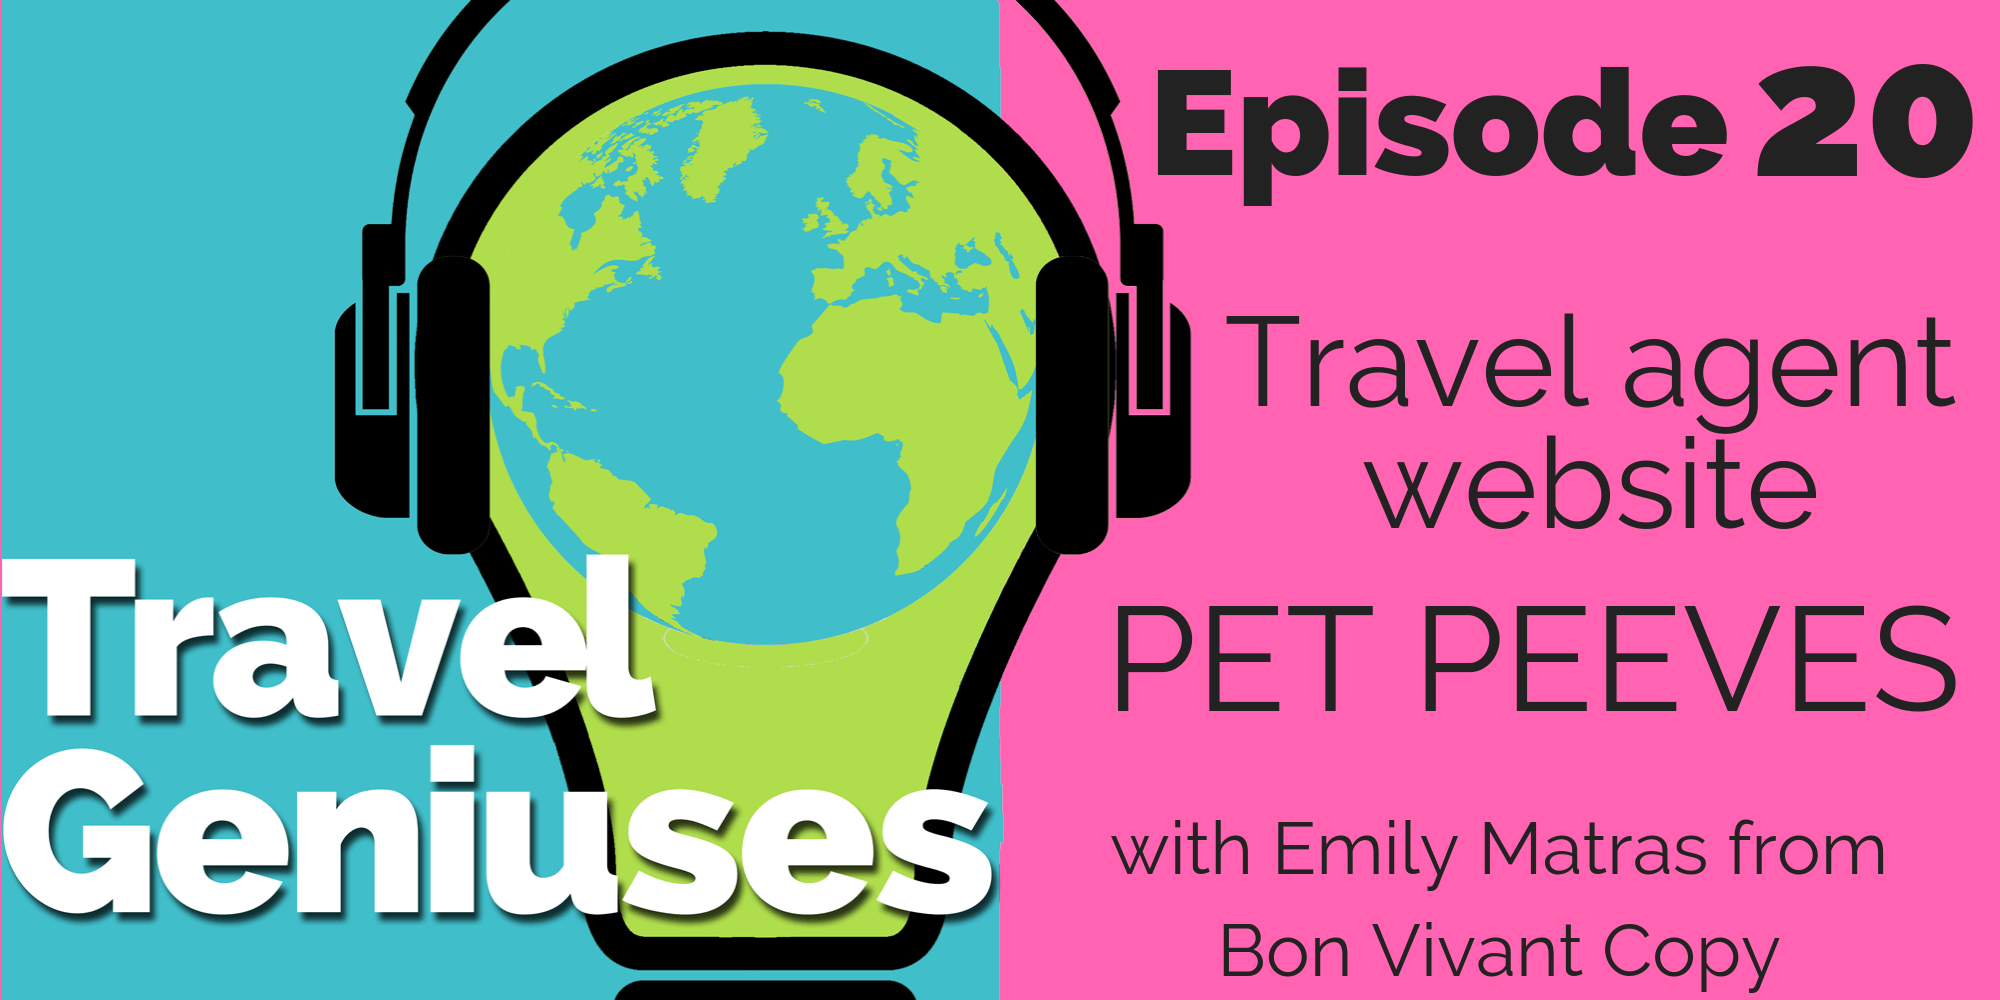 Episode 20 - Travel Agent Website Pet Peeves with Emily Matras